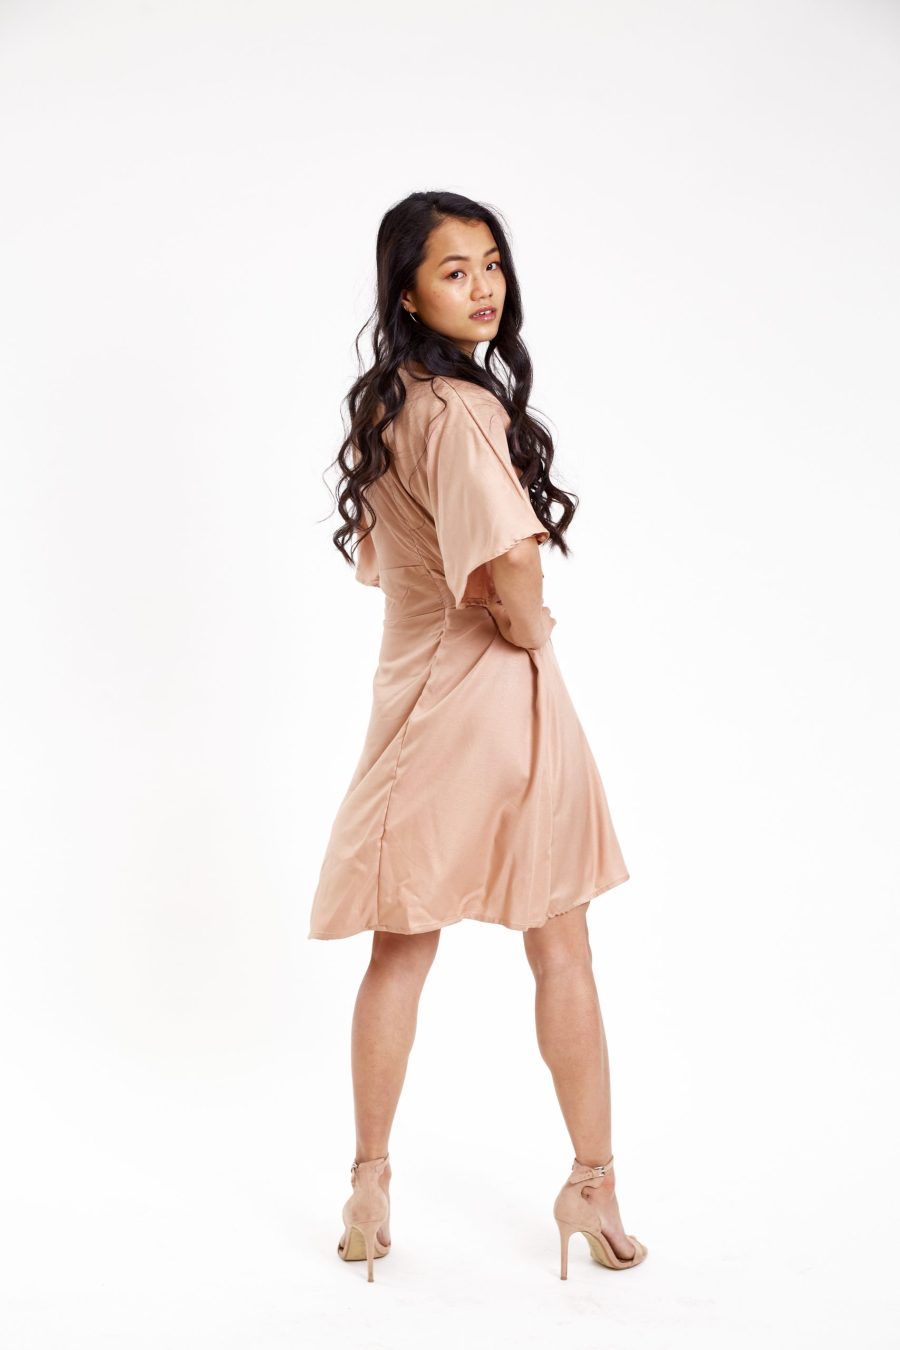 Butterfly maple dress outfit back